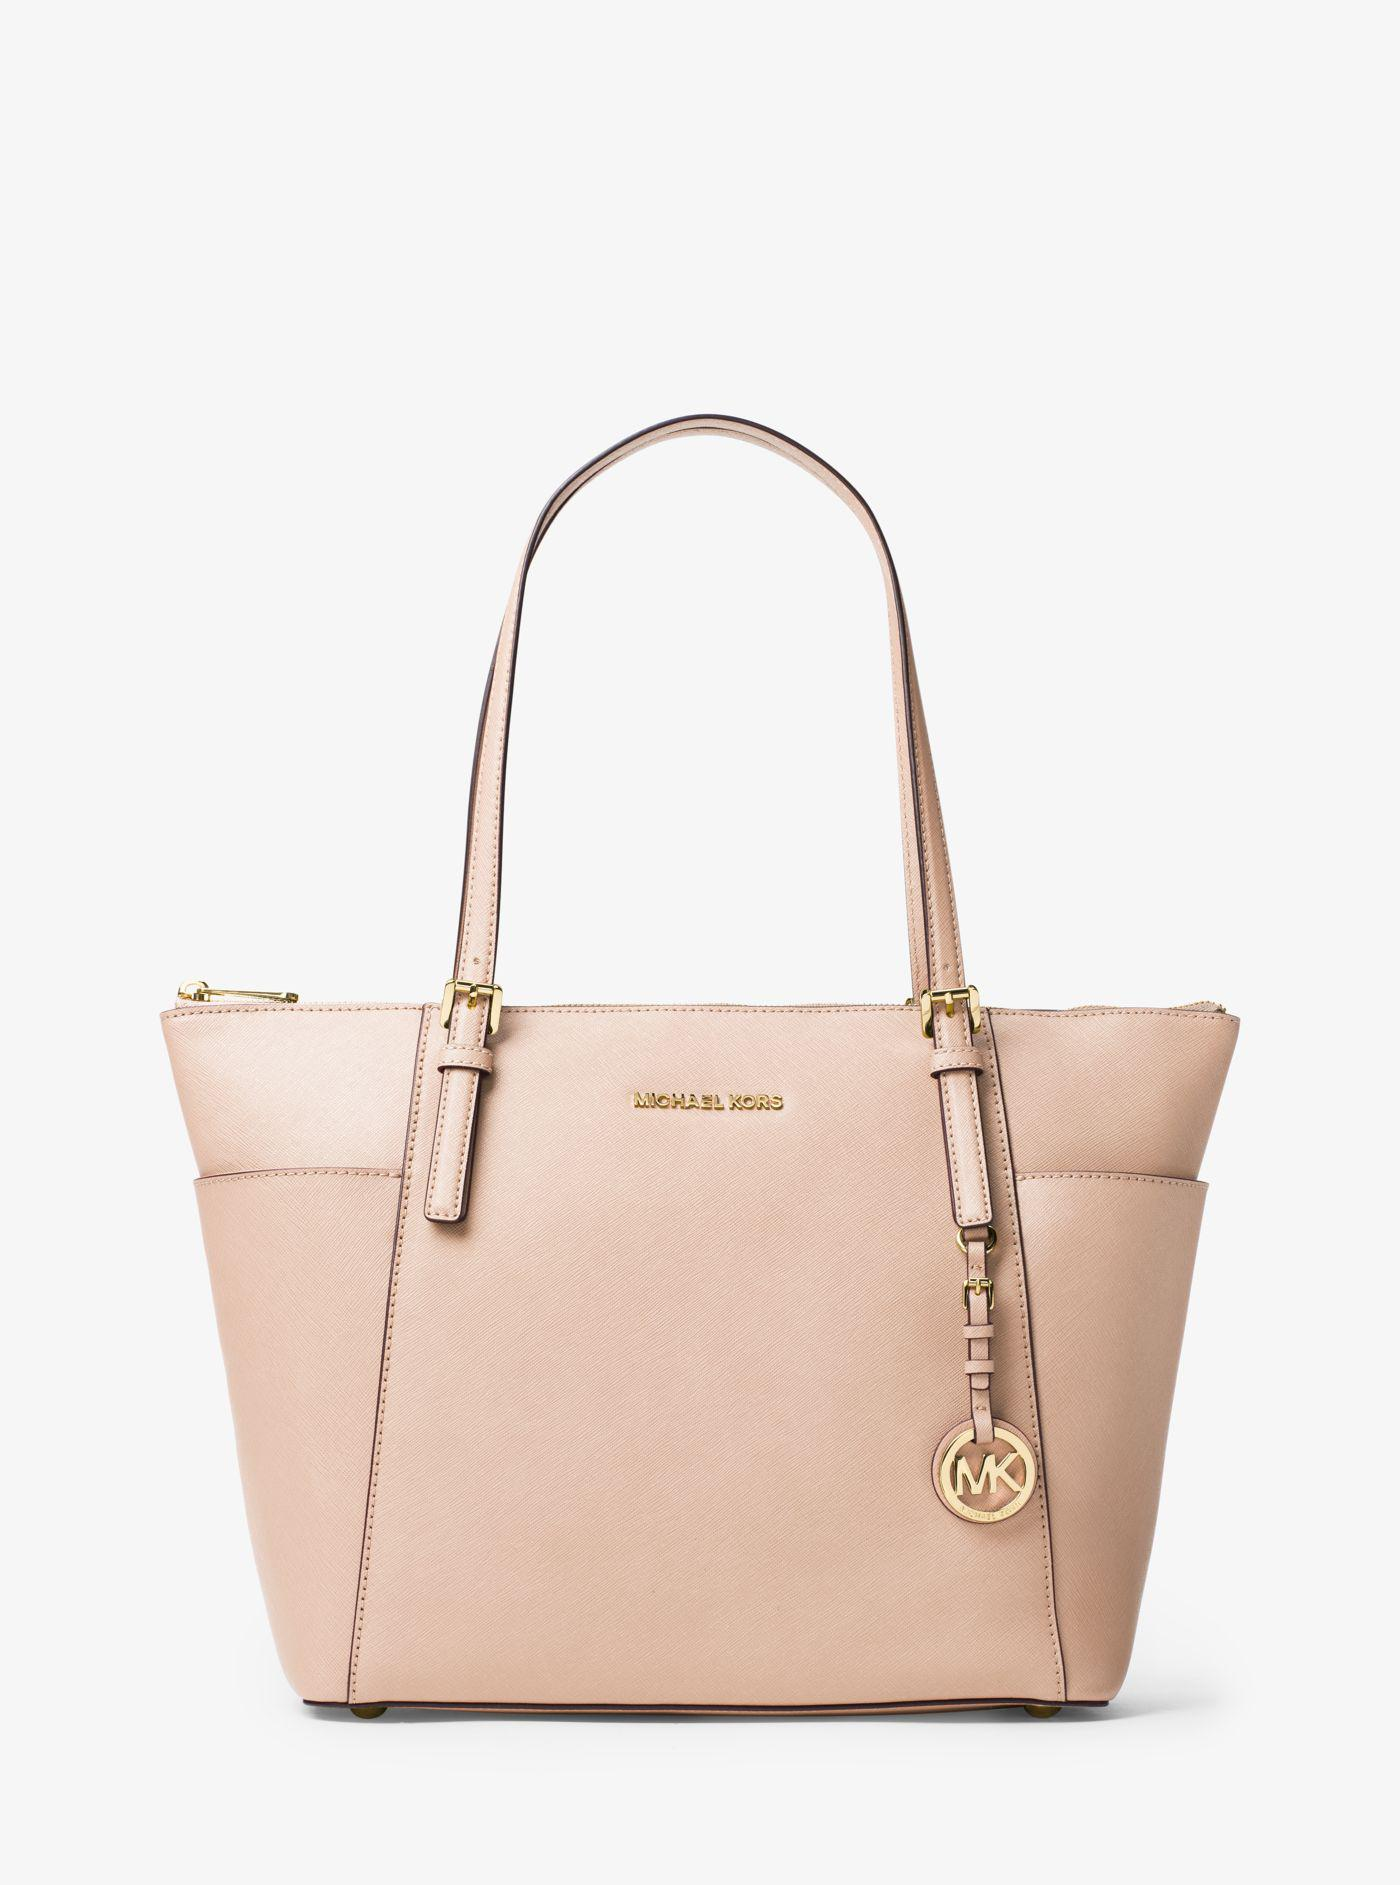 f6e743fba9d844 Michael Kors - Pink Jet Set Large Top-zip Saffiano Leather Tote - Lyst.  View fullscreen